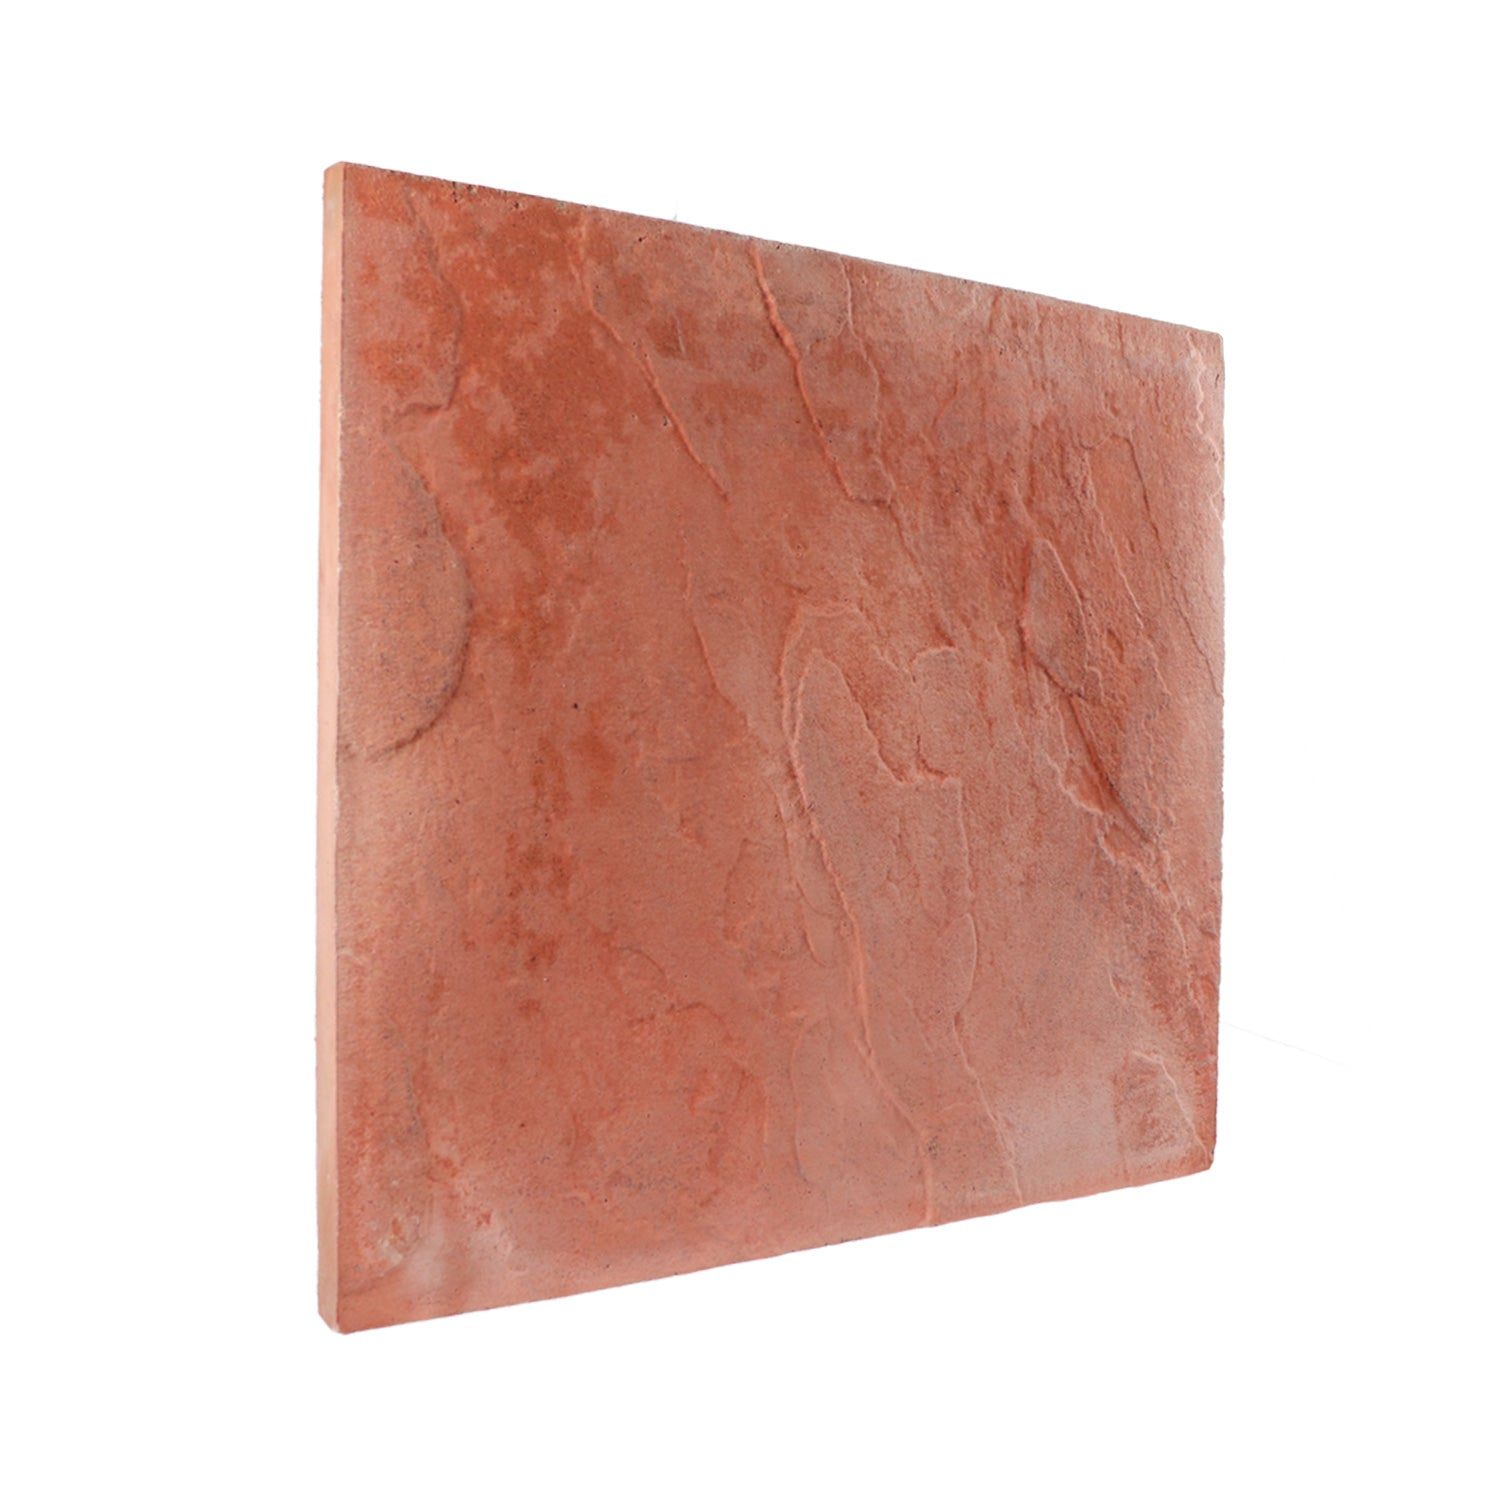 Peak Riven Red Slabs 600mm x 600mm